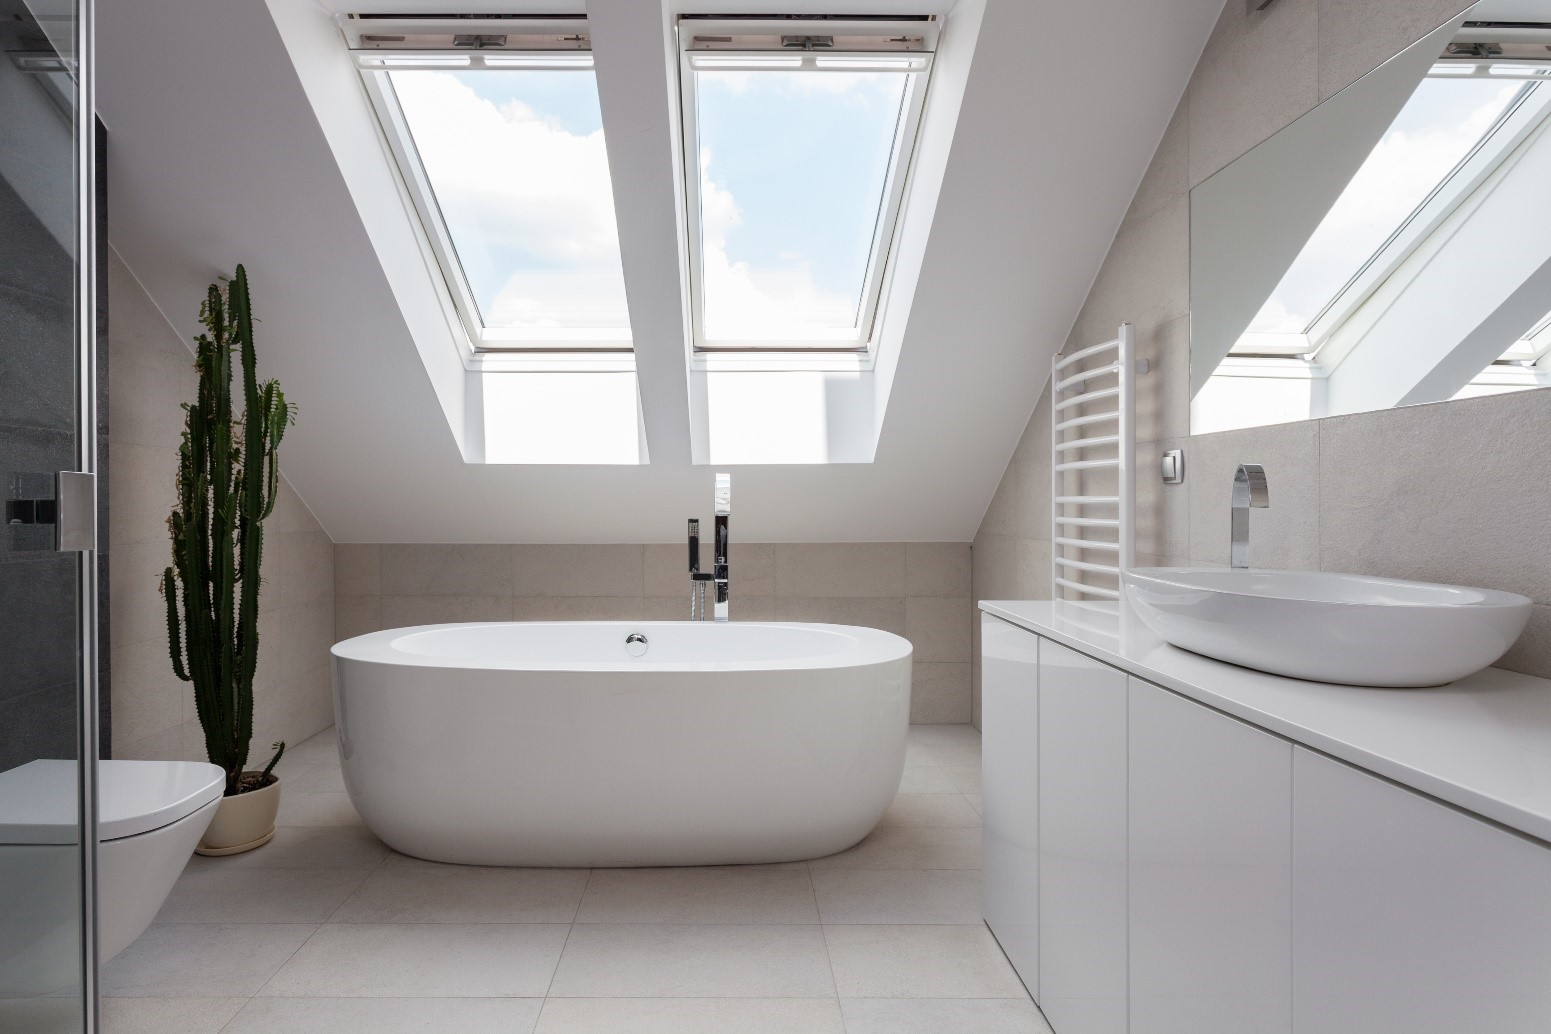 Finding the Right Free Standing Bath Tub for Your Dream Bathroom